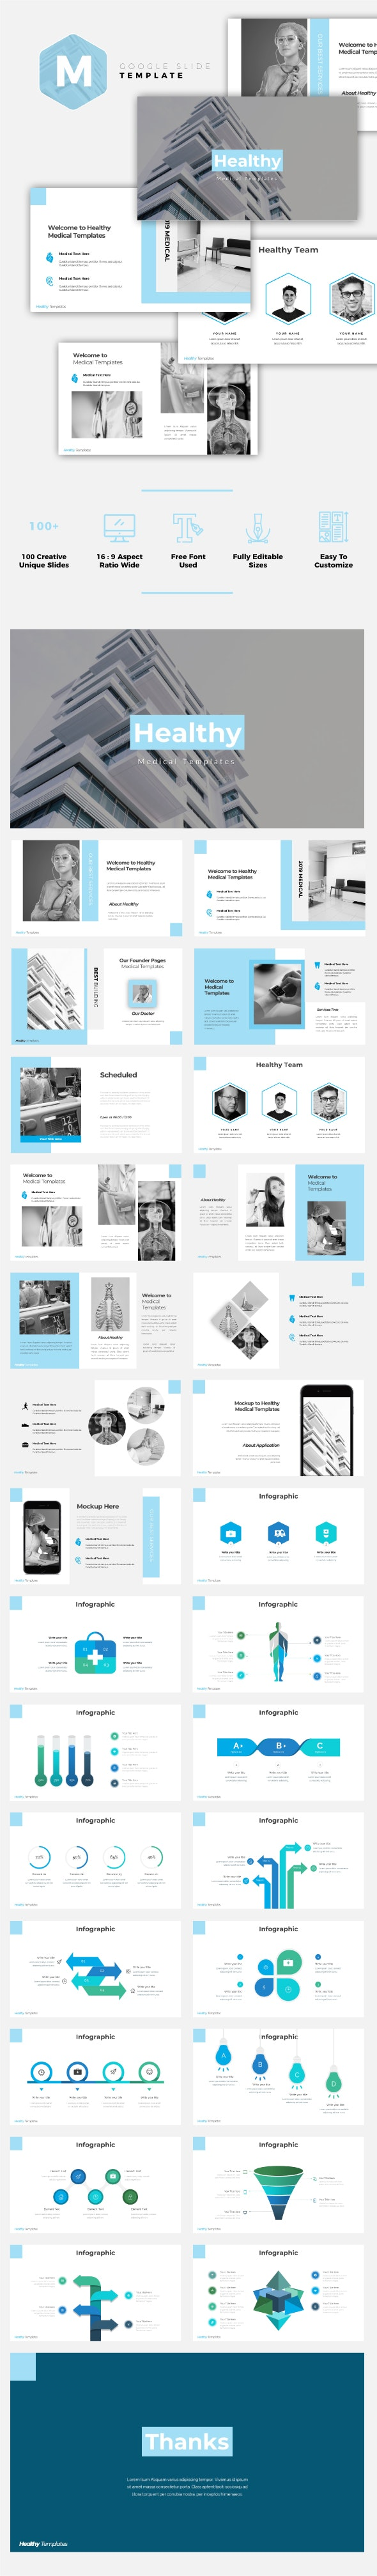 Healthy - Medical Google Slides Template - Google Slides Presentation Templates